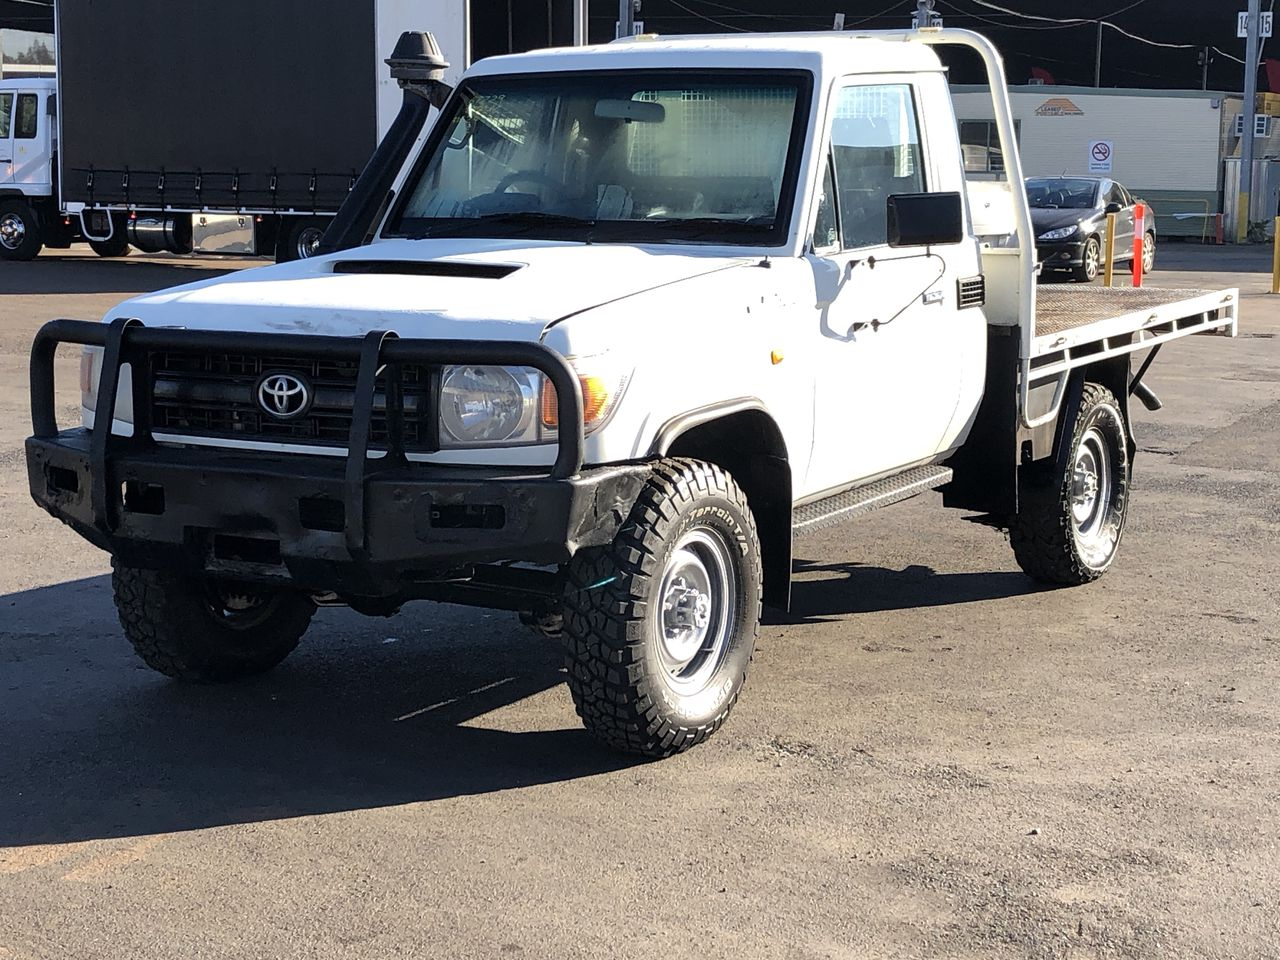 2011 Toyota Landcruiser Workmate (4x4)VDJ79R Turbo Diesel Manual CabChassis